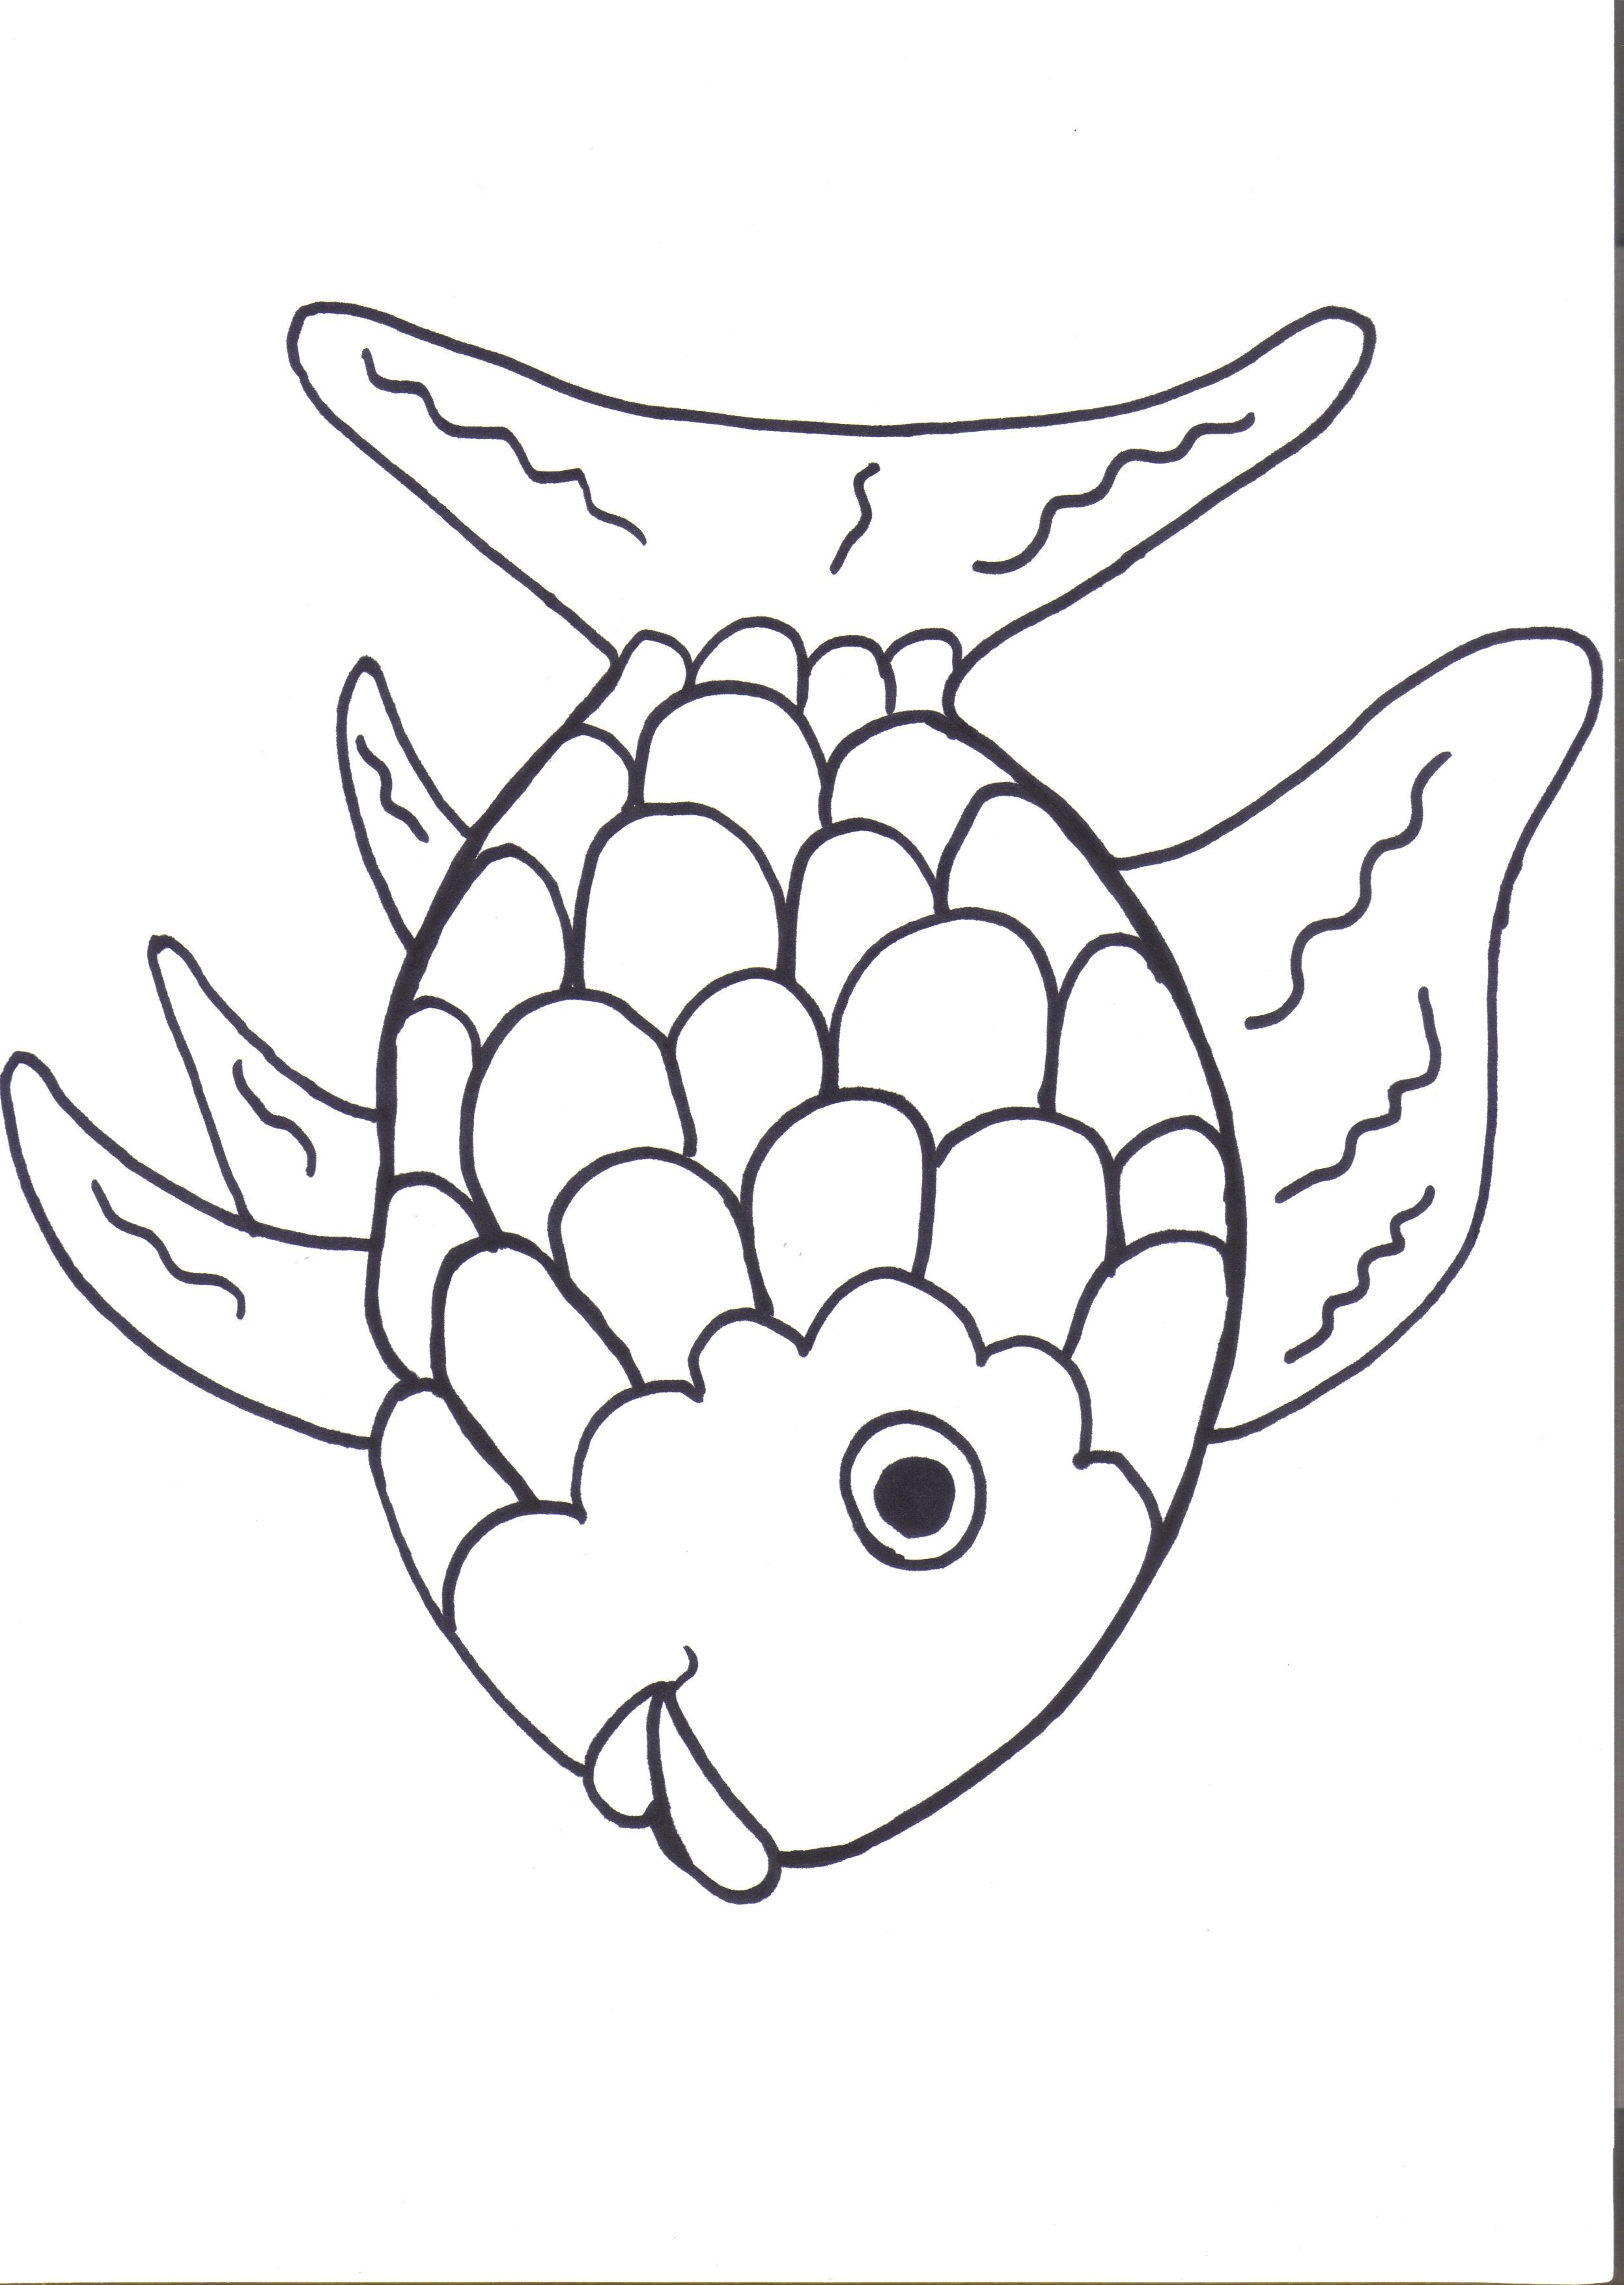 Free coloring pages august - Rainbow Fish Printables August Preschool Themes Child Care Information Kids Coloring Pages Coloring